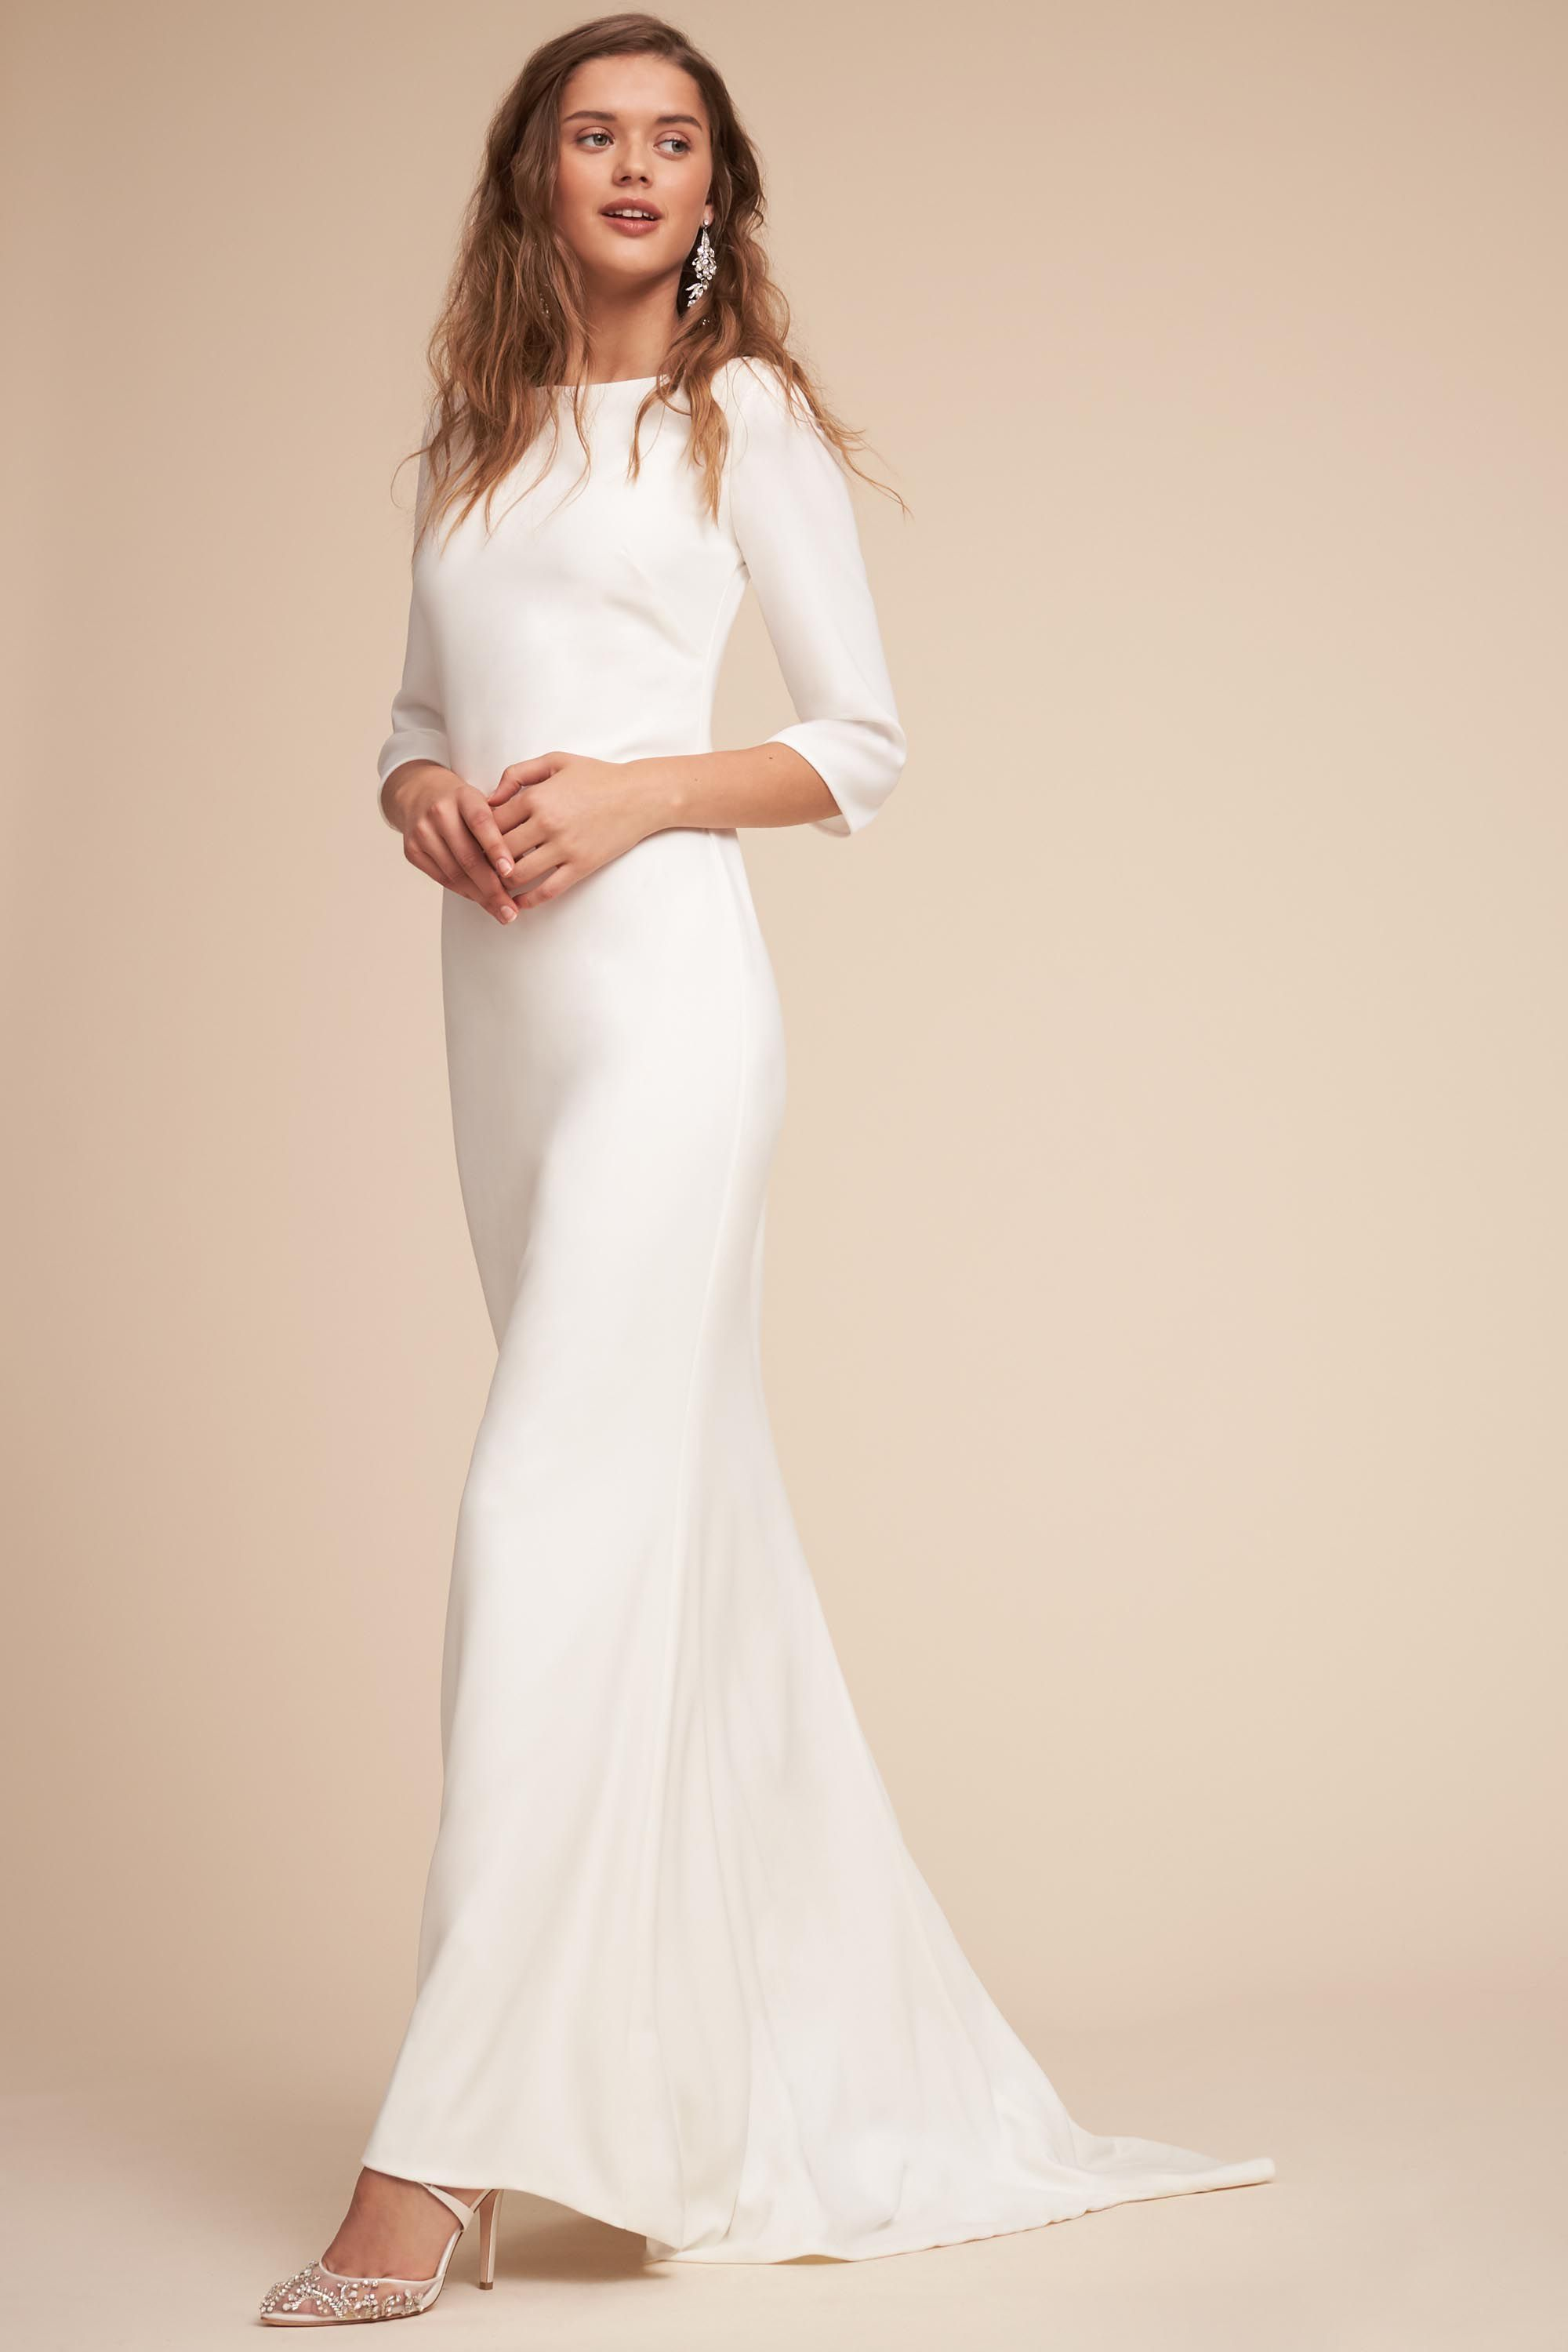 Bacall Gown   wedding   Pinterest   Gowns, Wedding dress and Wedding